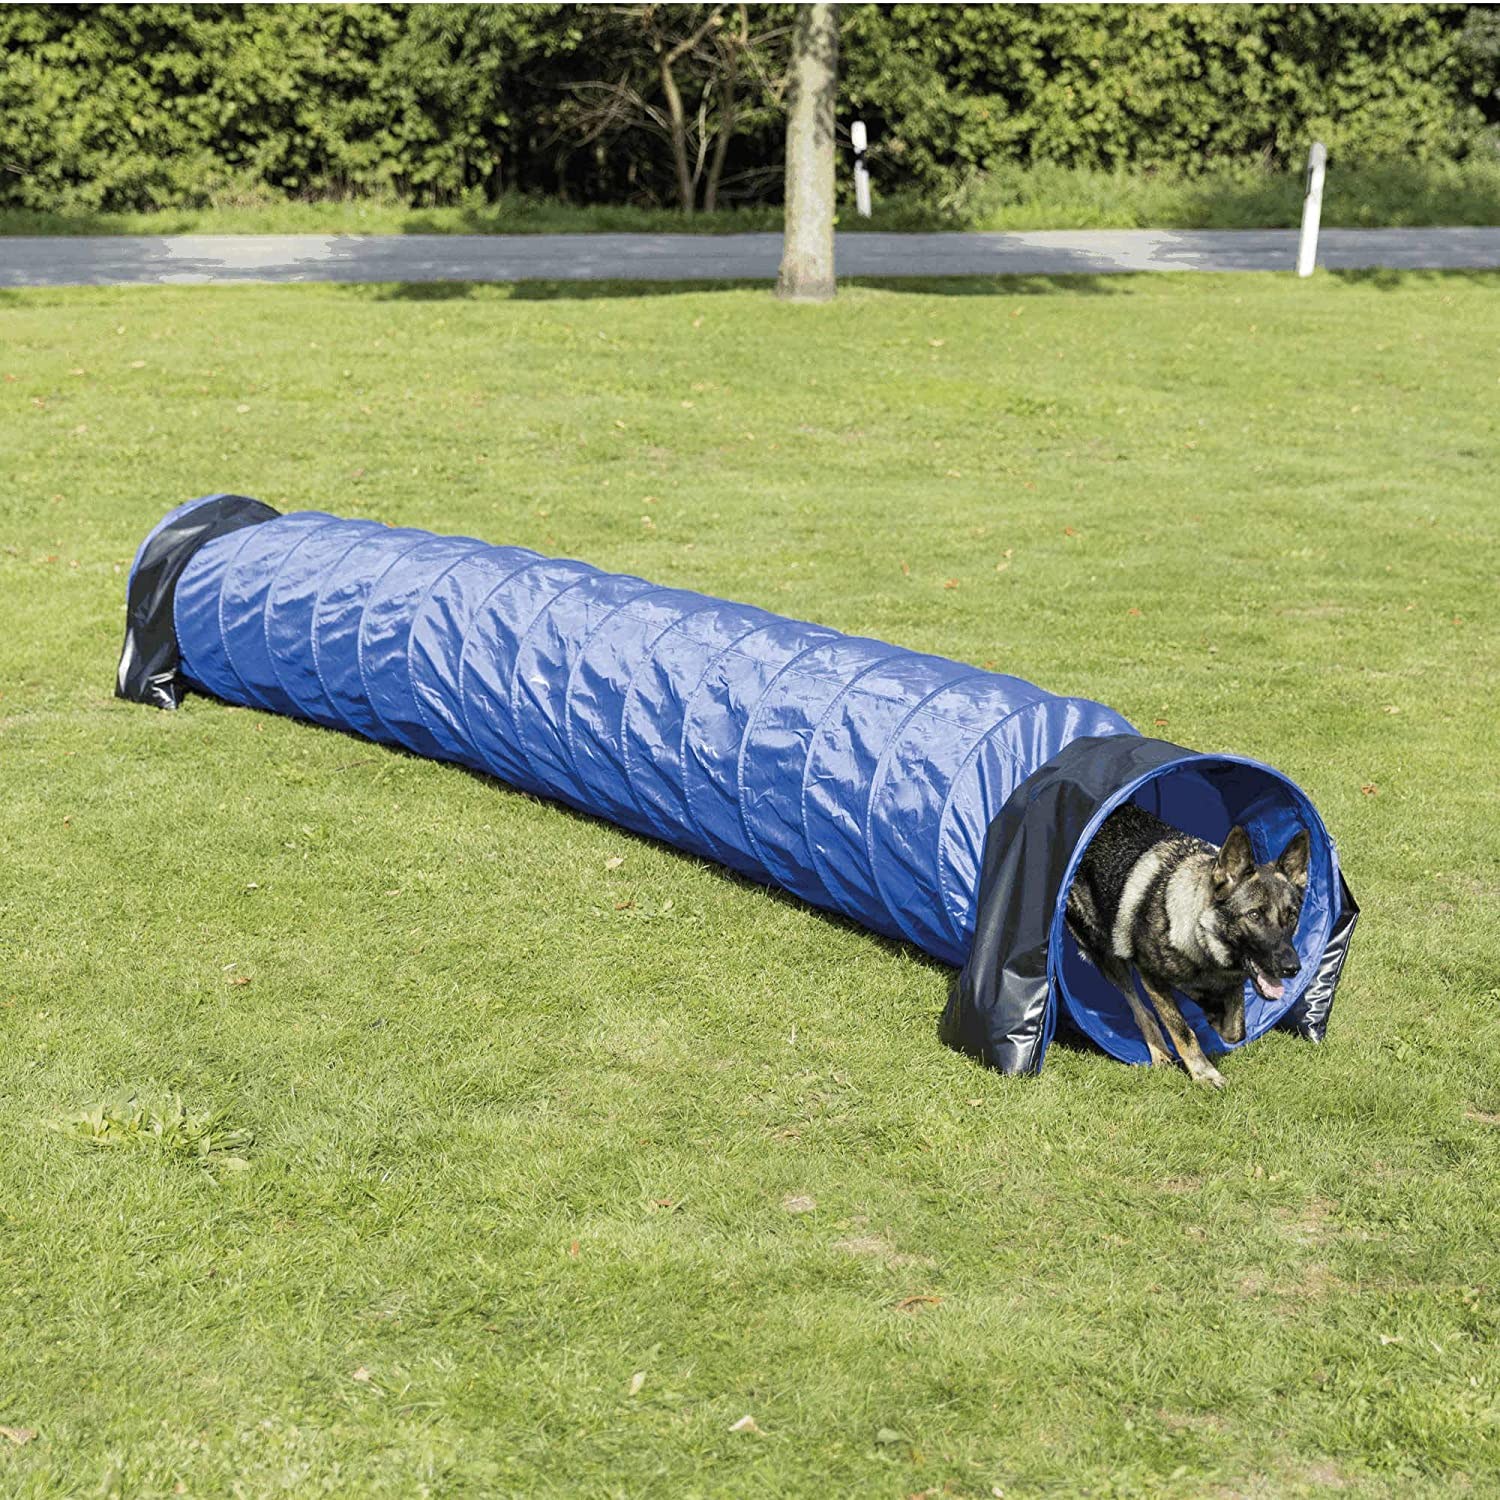 Trixie 3211 Pet Products Agility Basic Tunnel, Large, bluee